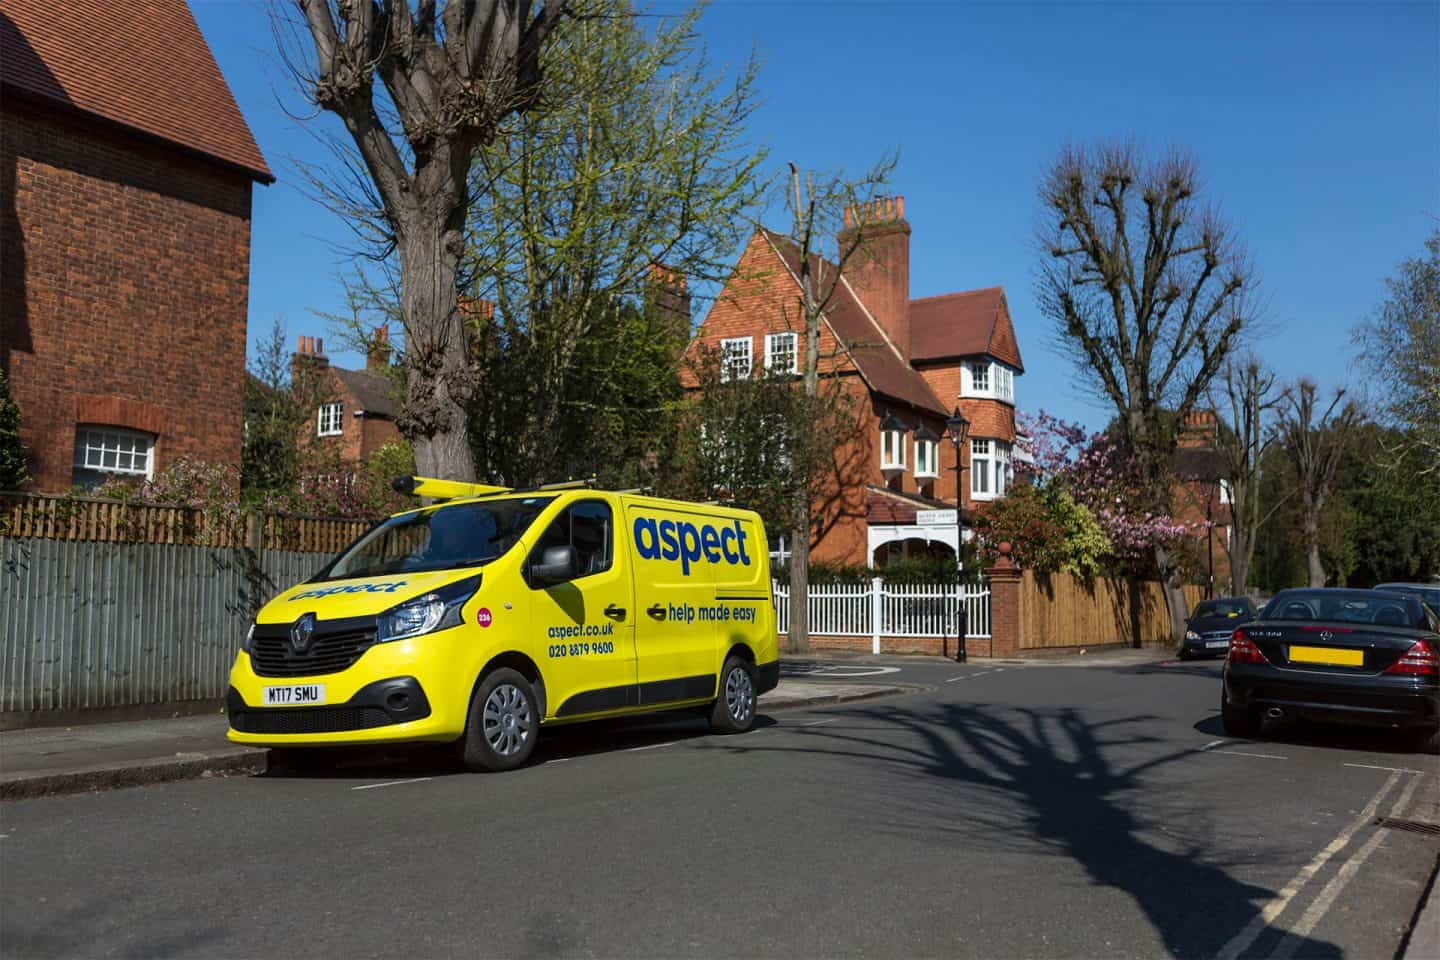 West London Roofers Specialist Roofers Near You Whenever You Need Them